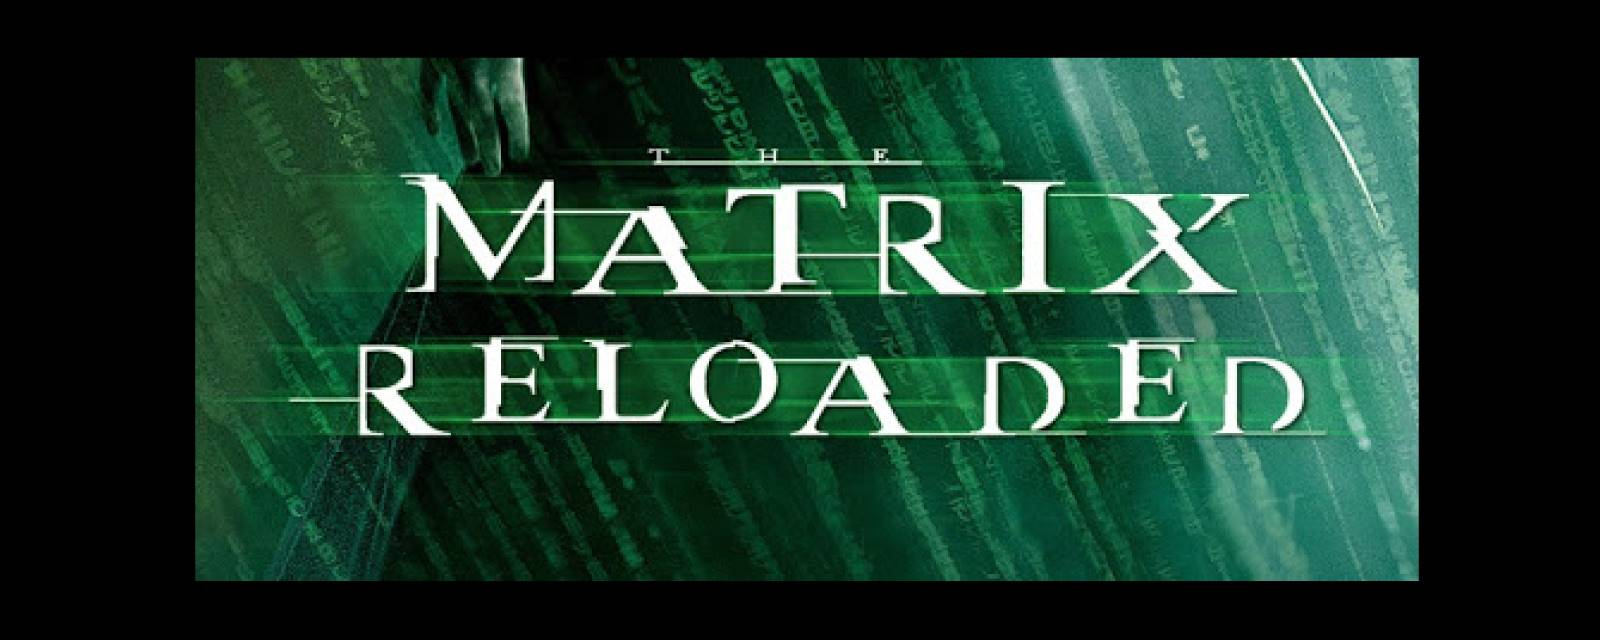 The Matrix Reloaded image